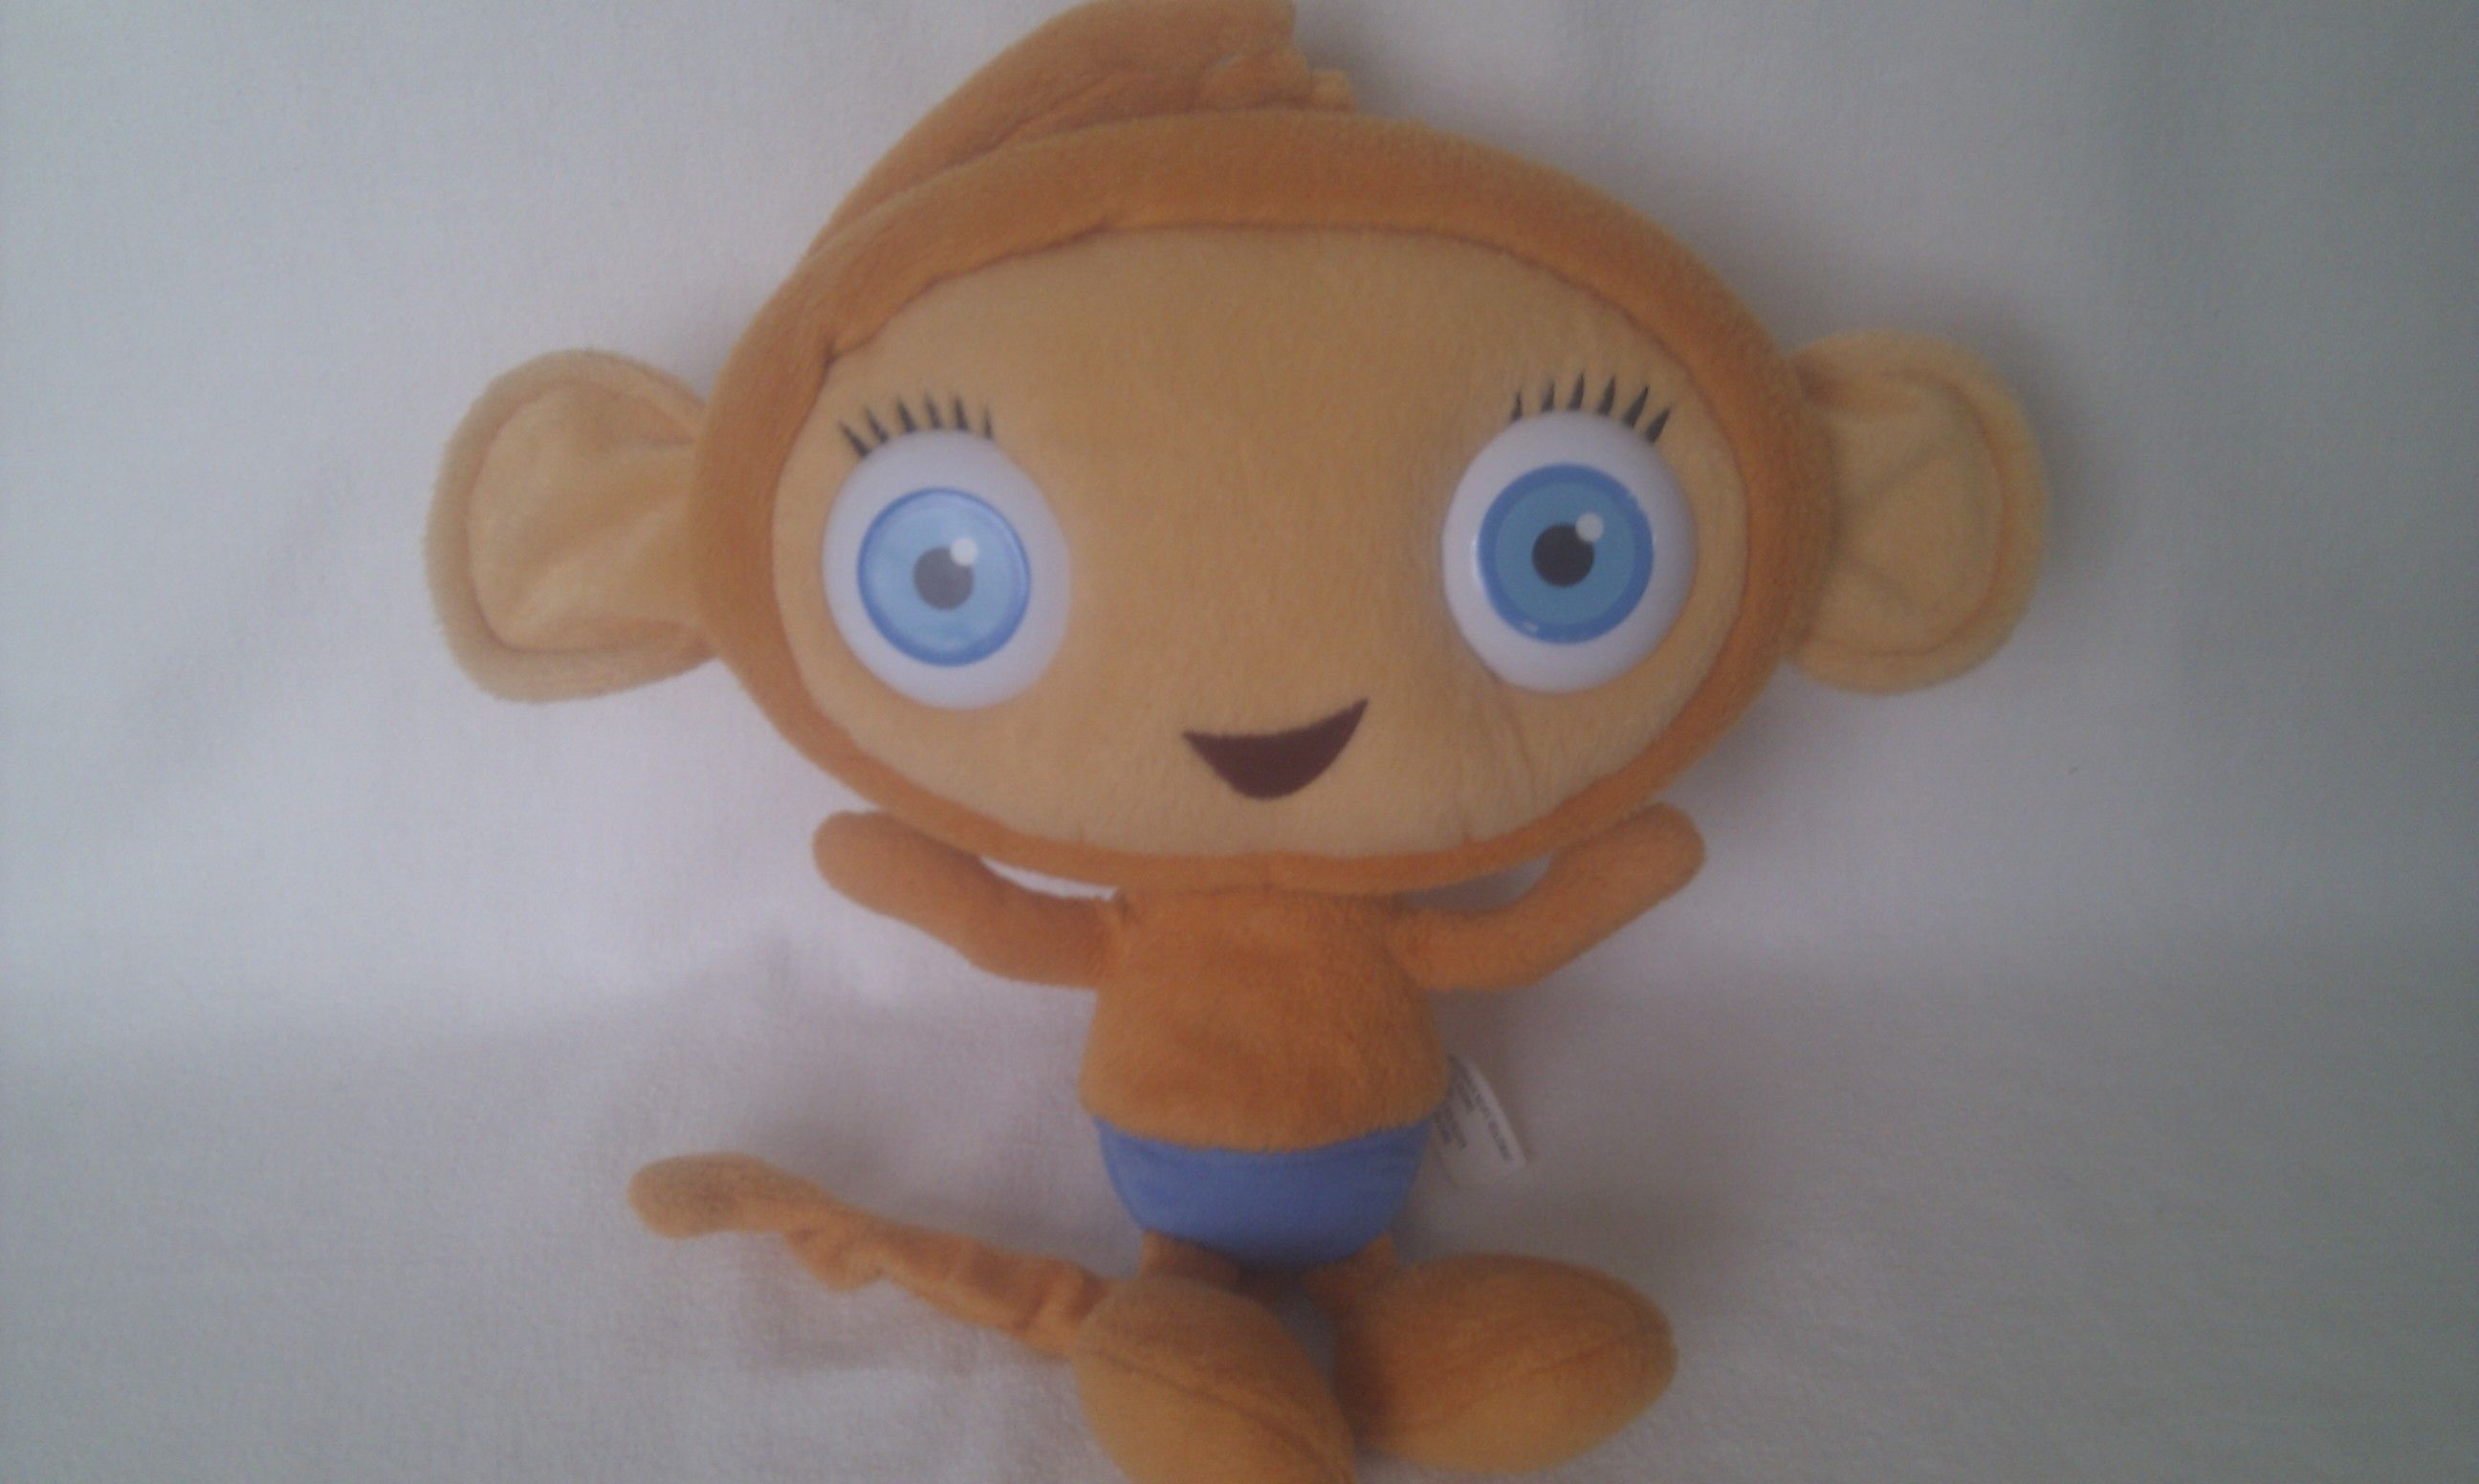 adorable big talking yojojo waybuloo plush toy